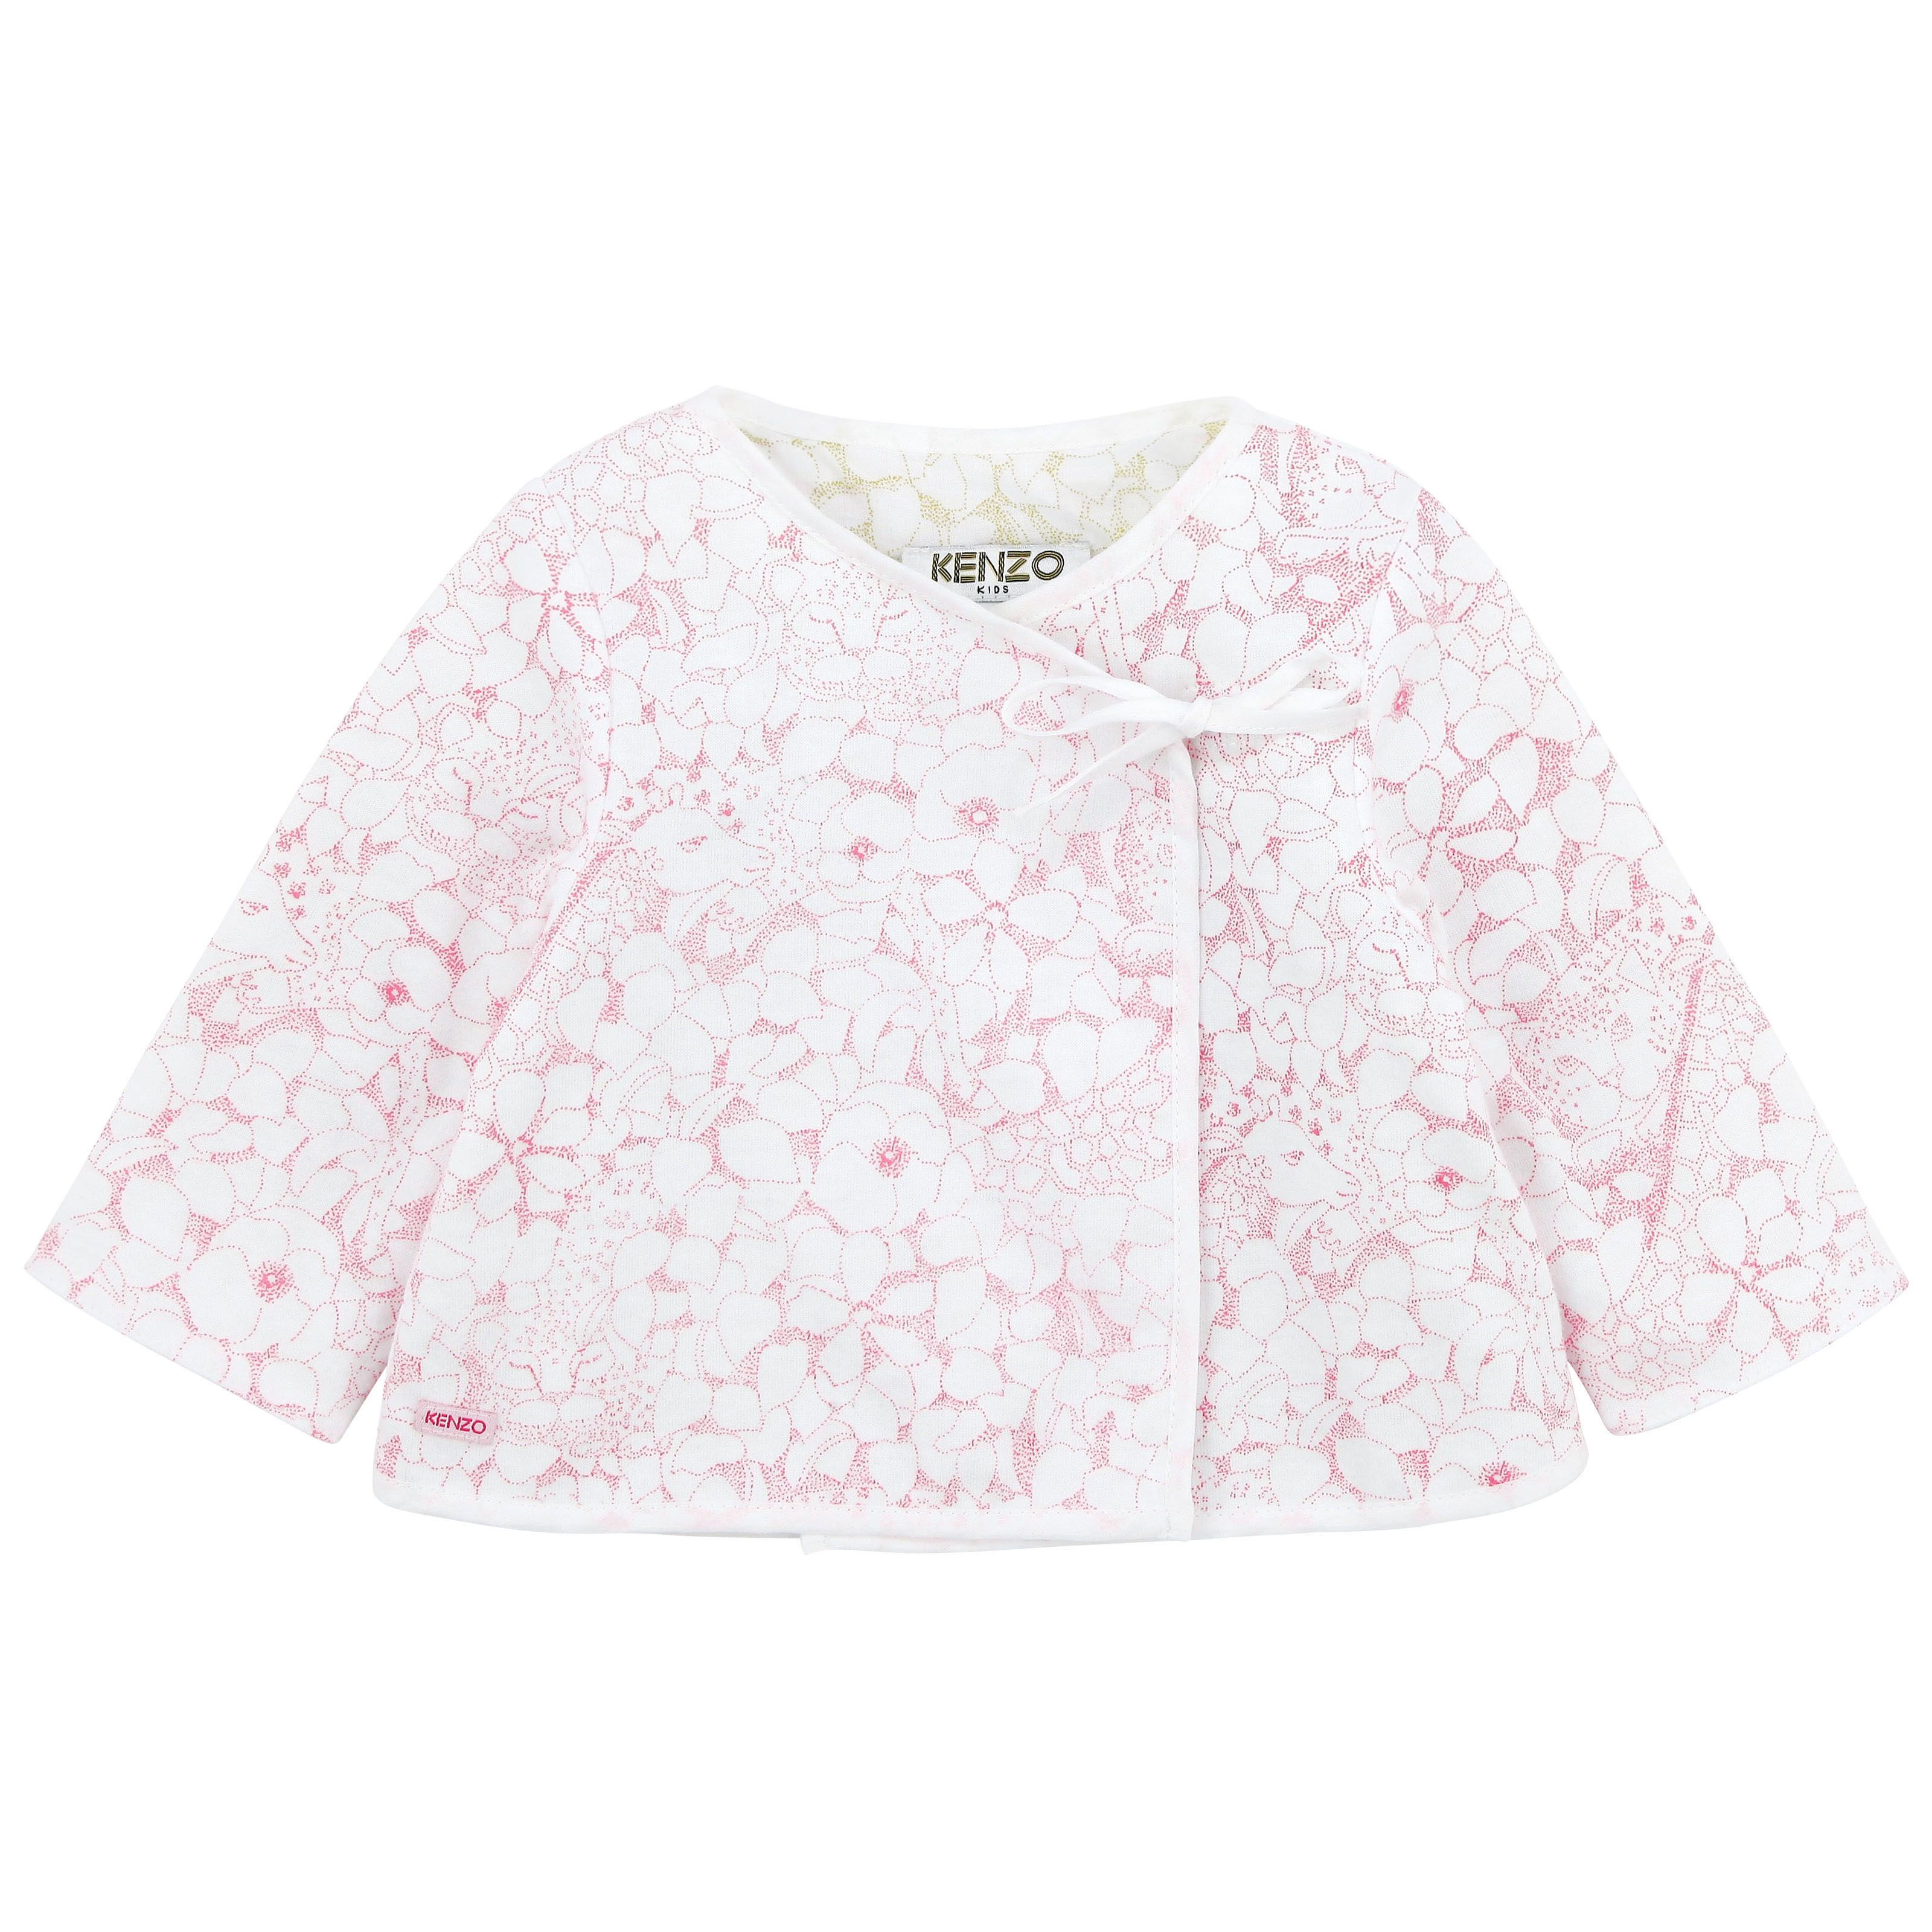 Reversible cardigan made of cotton jersey and printed voile. Long sleeves. Ribbons to tie on the front. - 52,00 €